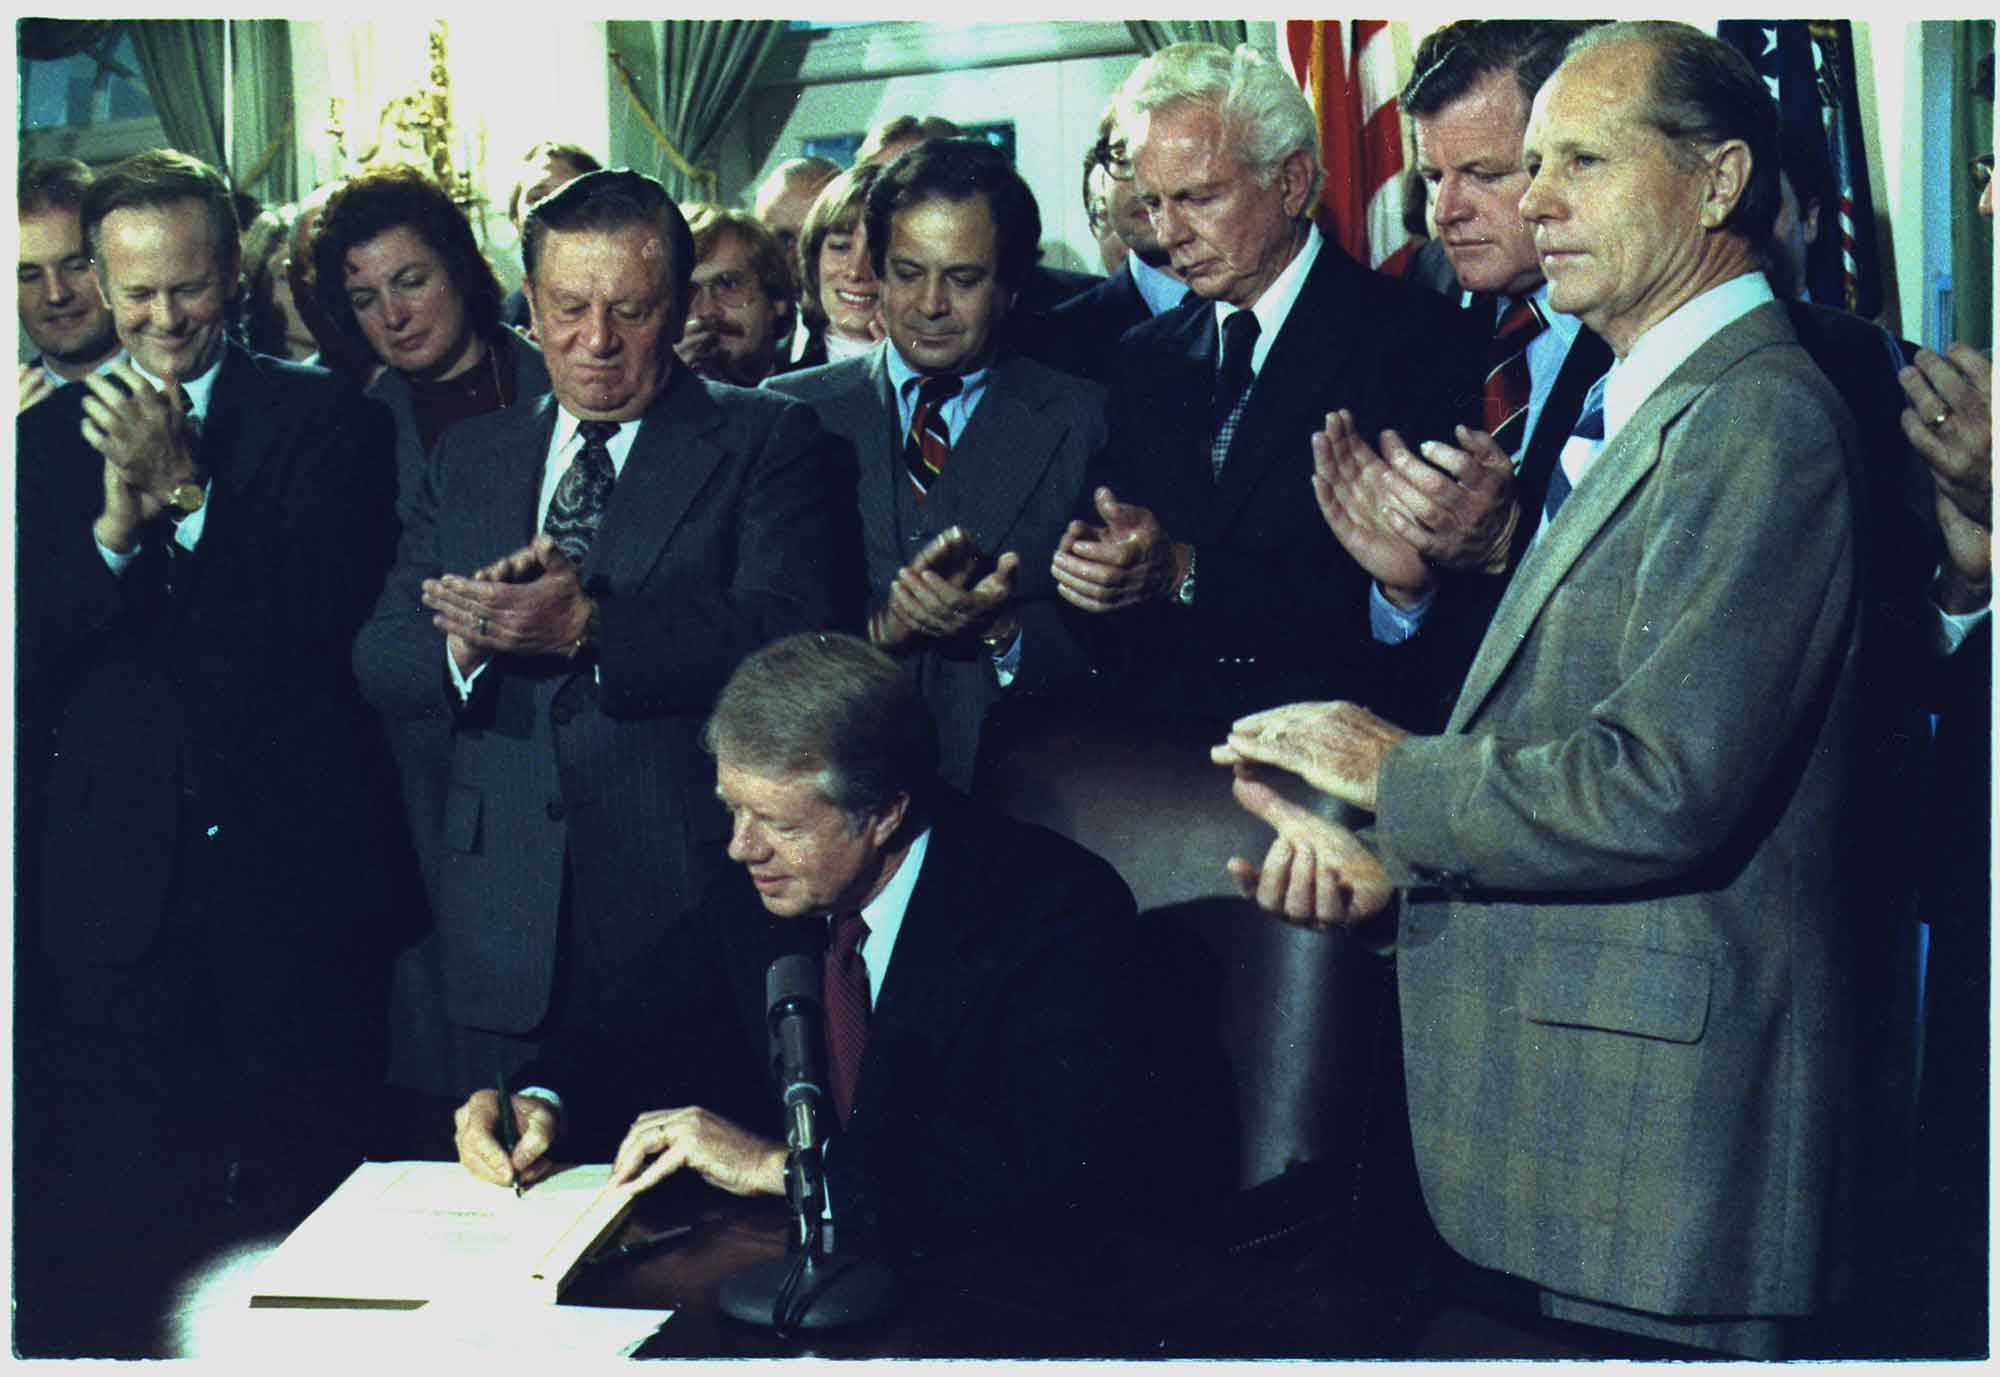 Jimmy Carter signs the Airline Deregulation Act of 1978 (NARA/Wikimedia).